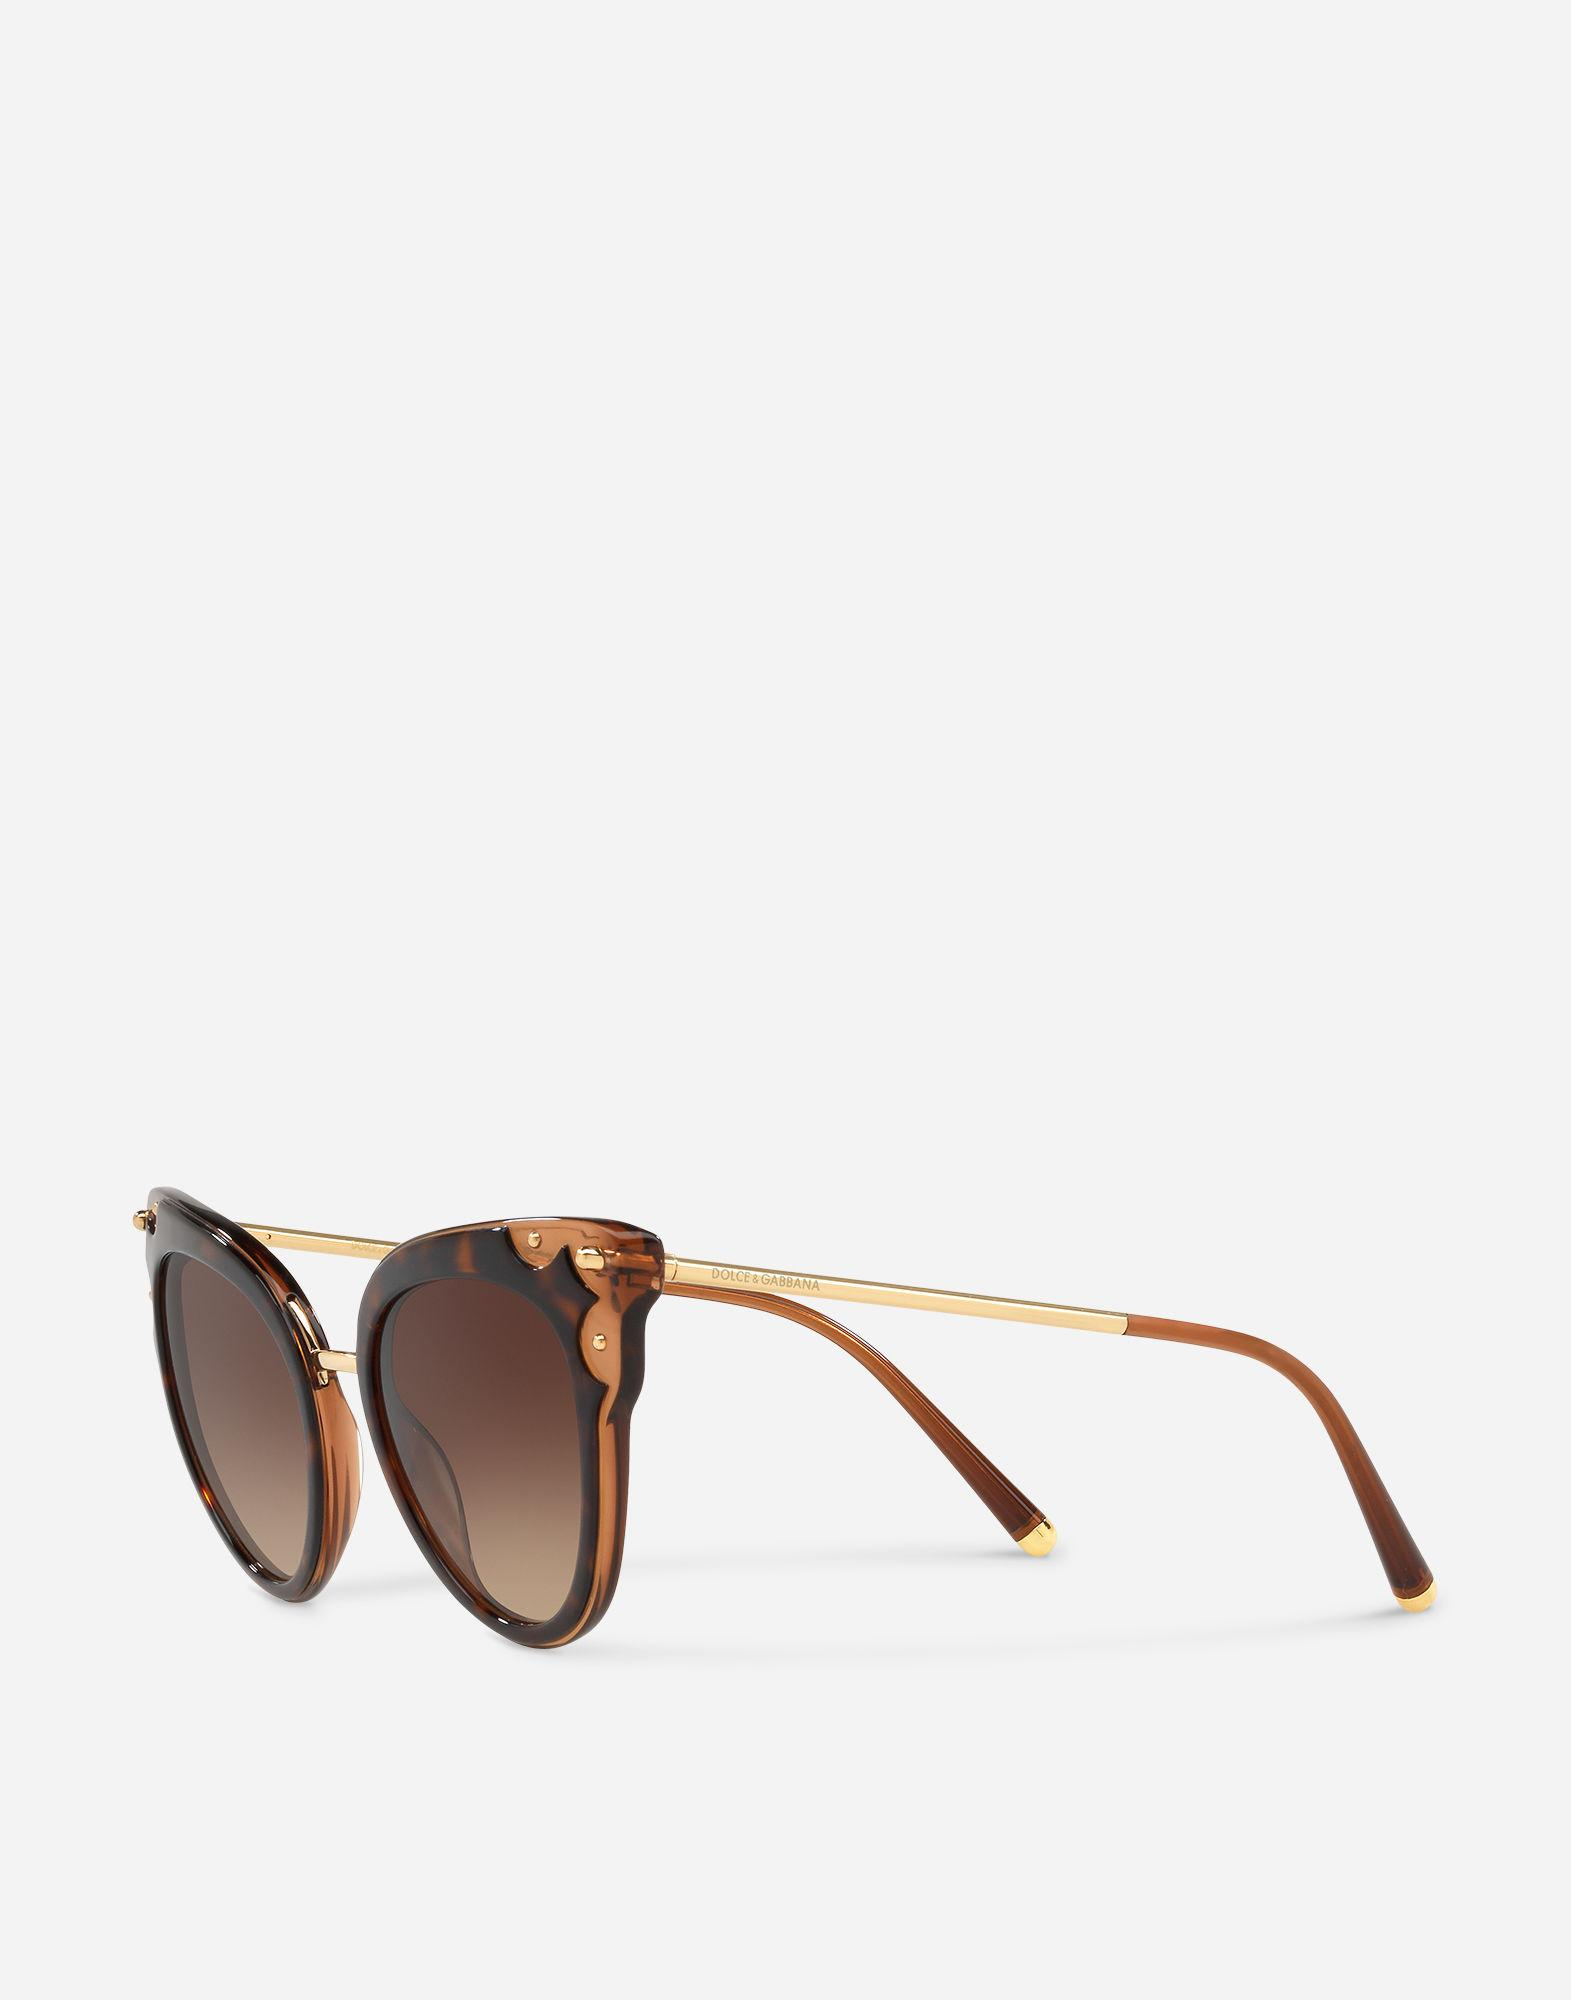 c084cd88aa2 Lyst - Dolce   Gabbana Cat-eye Acetate Sunglasses With Metal Details in  Brown